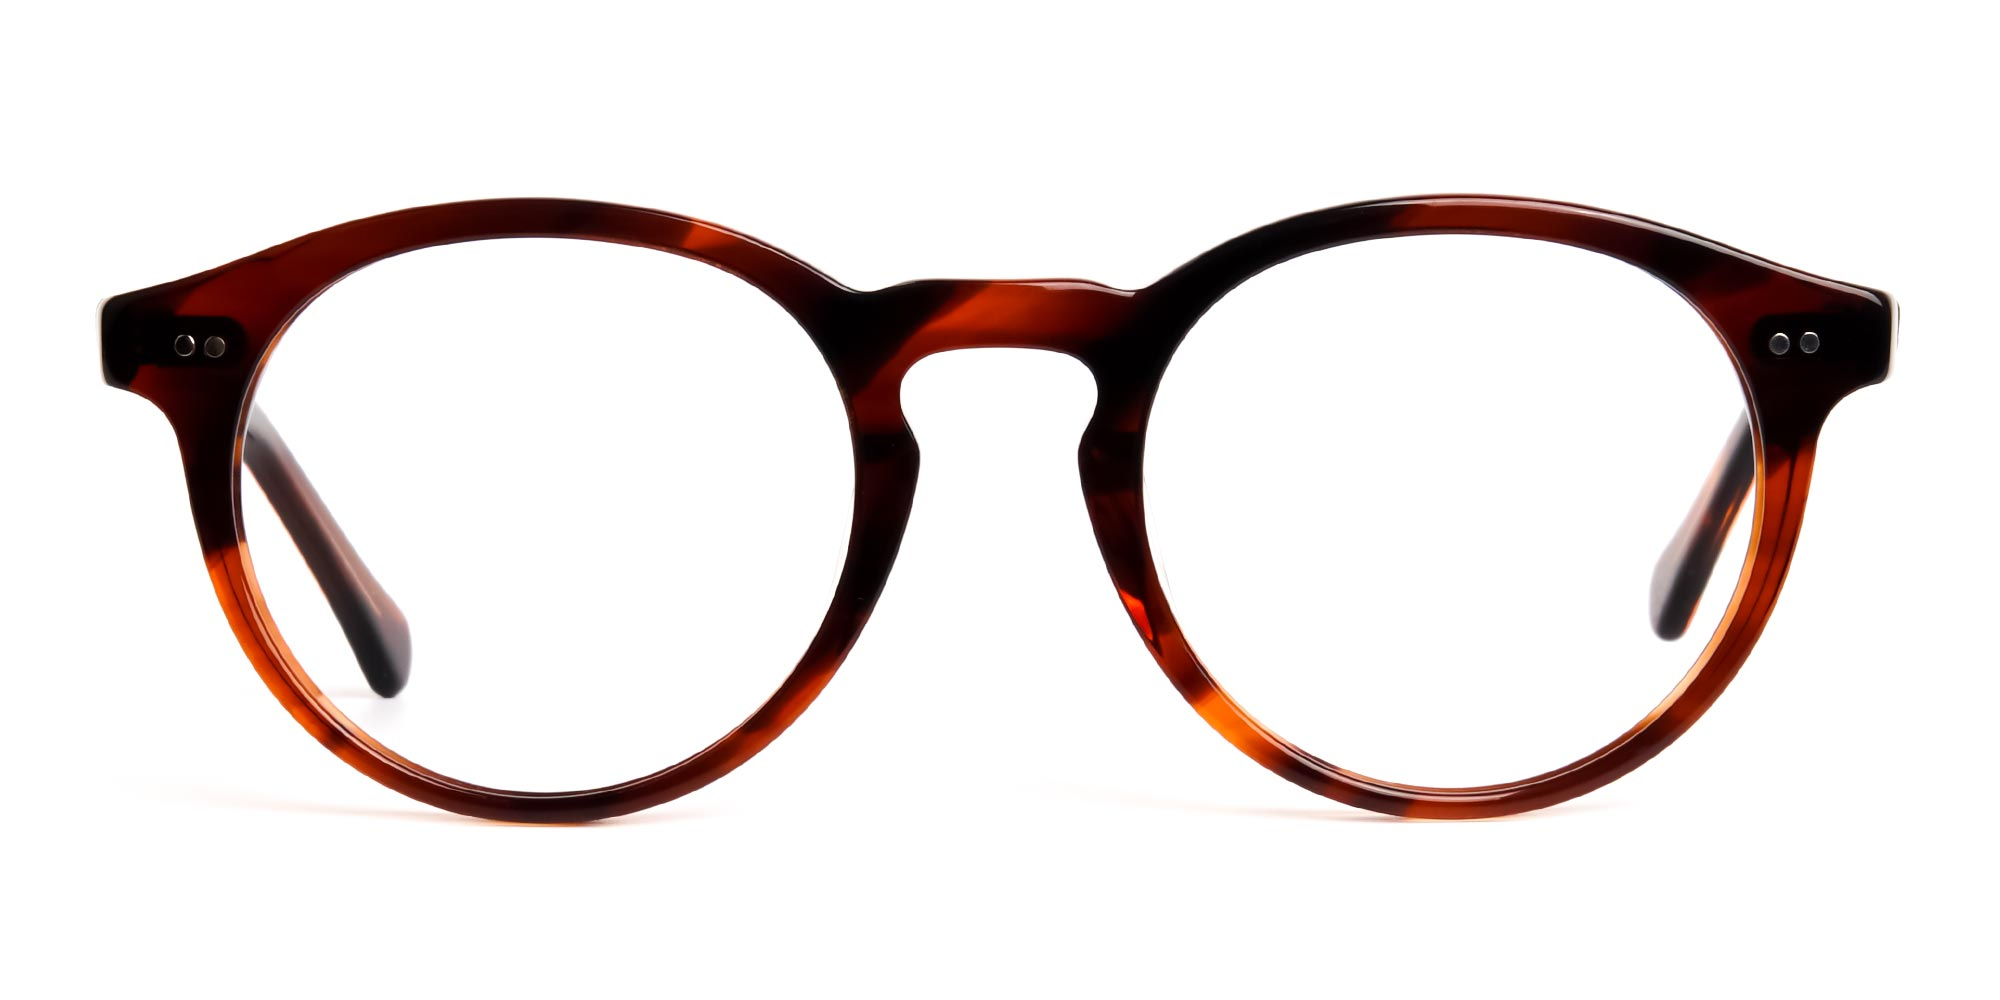 Dark Black and Brown Tortoise Shell Glasses